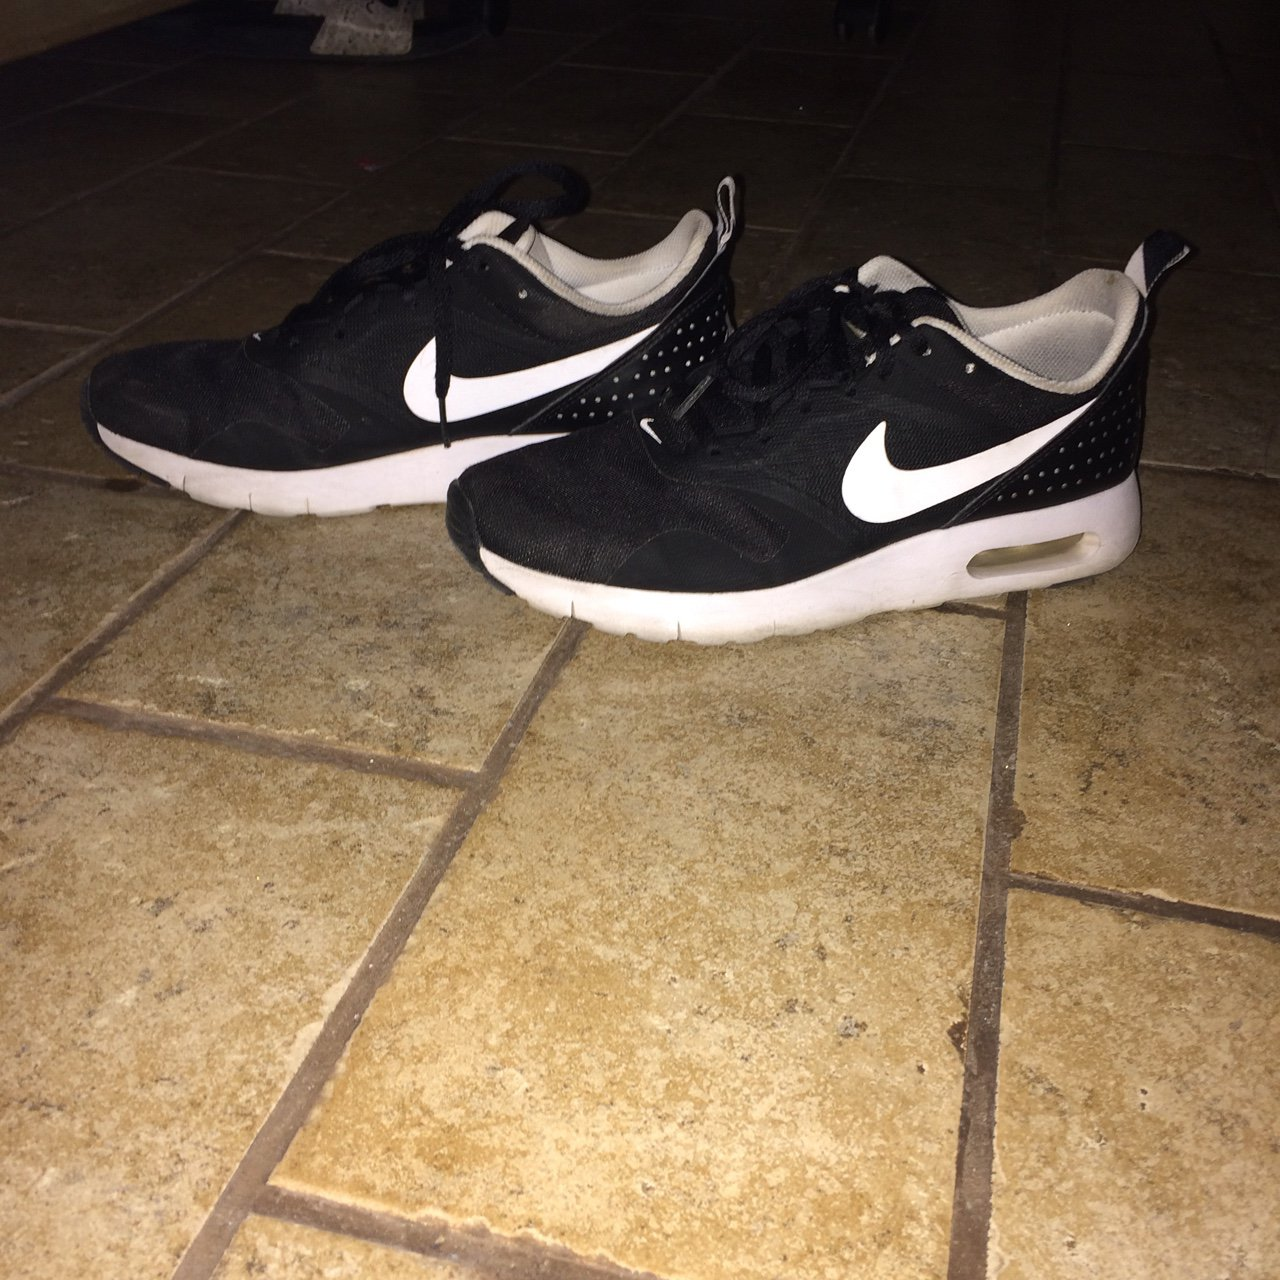 0338cef8c87b Nike running shoes Feel free to make offers! - Depop